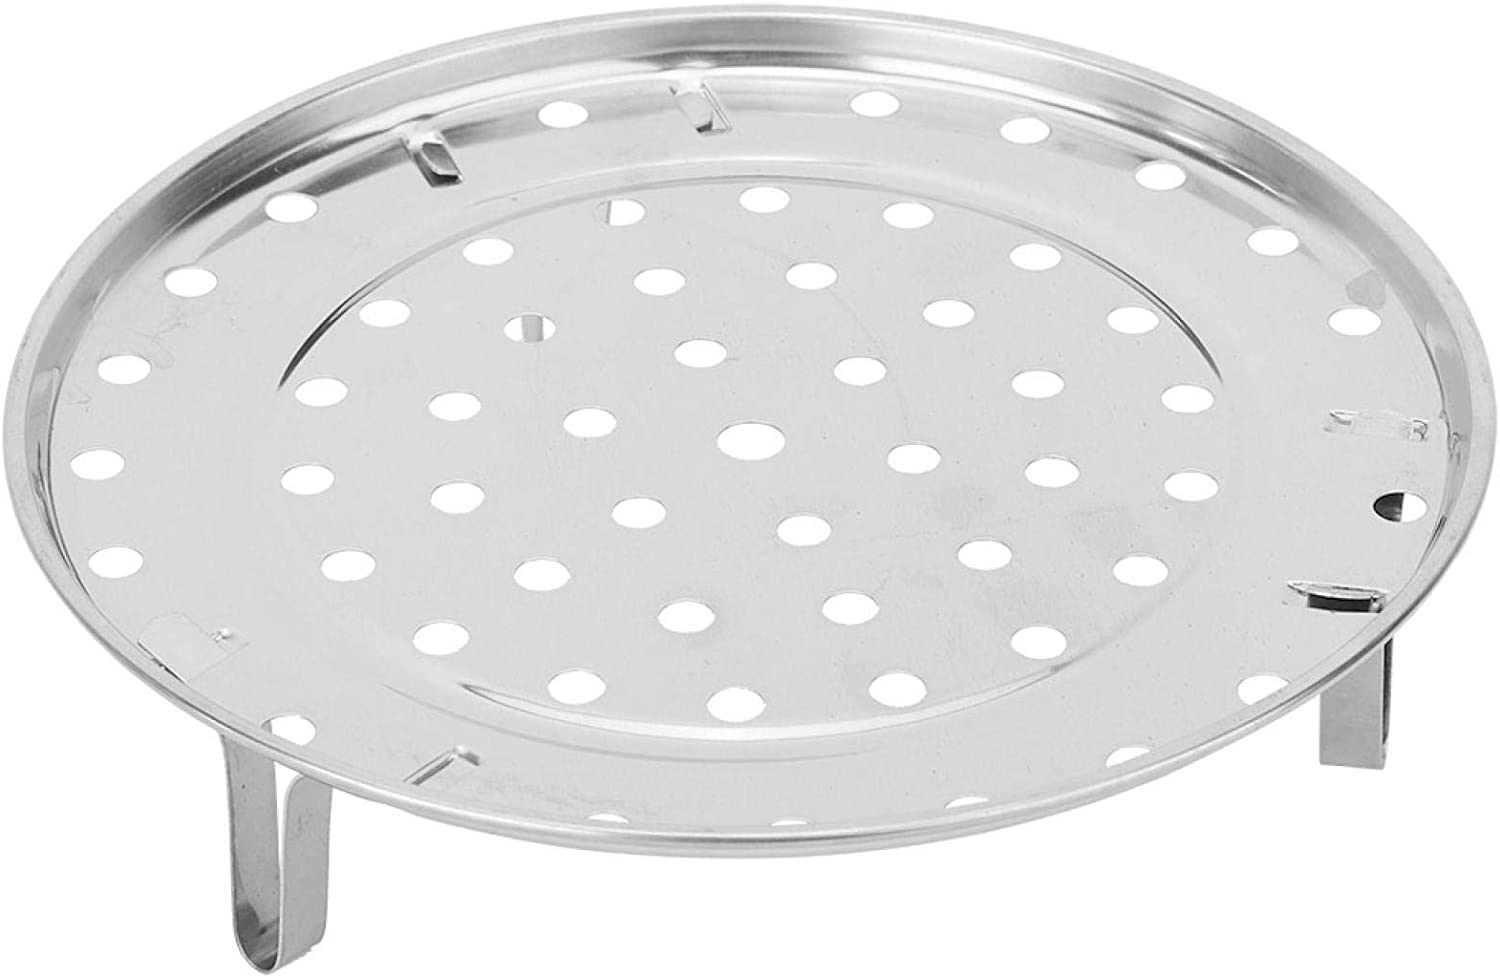 Stainless Steel Steam Holder, Multi-functional Round Steaming Rack Stand Heavy Duty Steamer Basket Tray for Kitchen Cooking Pressure Cooker Cookware - H 5cm(S 20cm)